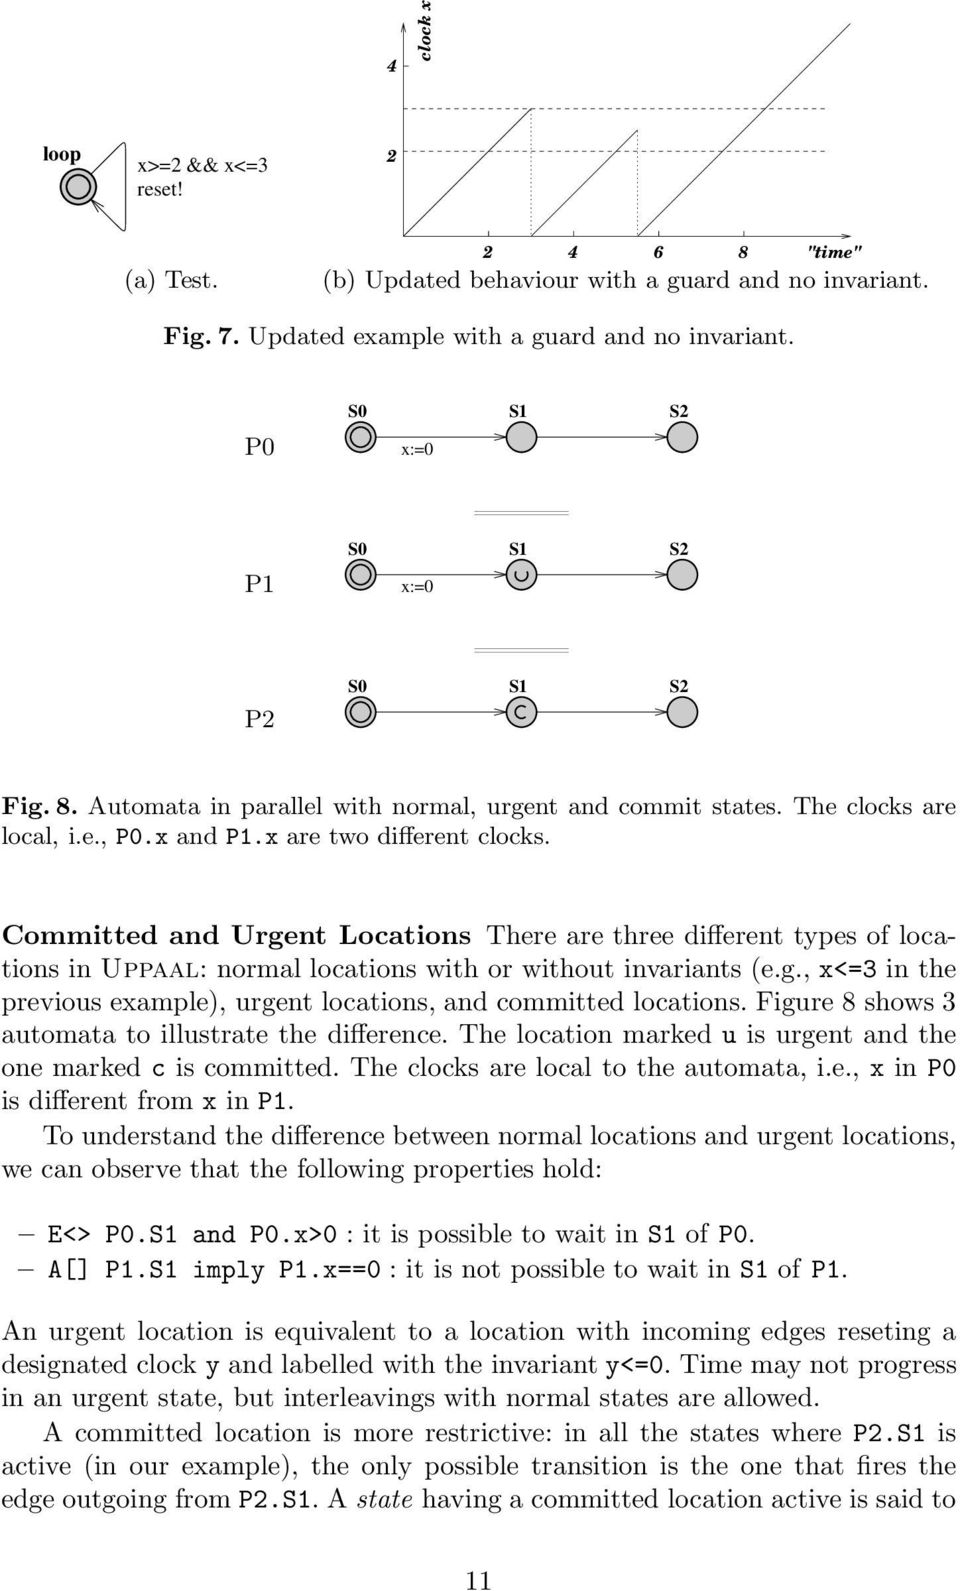 Committed and Urgent Locations There are three different types of locations in Uppaal: normal locations with or without invariants (e.g., x<=3 in the previous example), urgent locations, and committed locations.